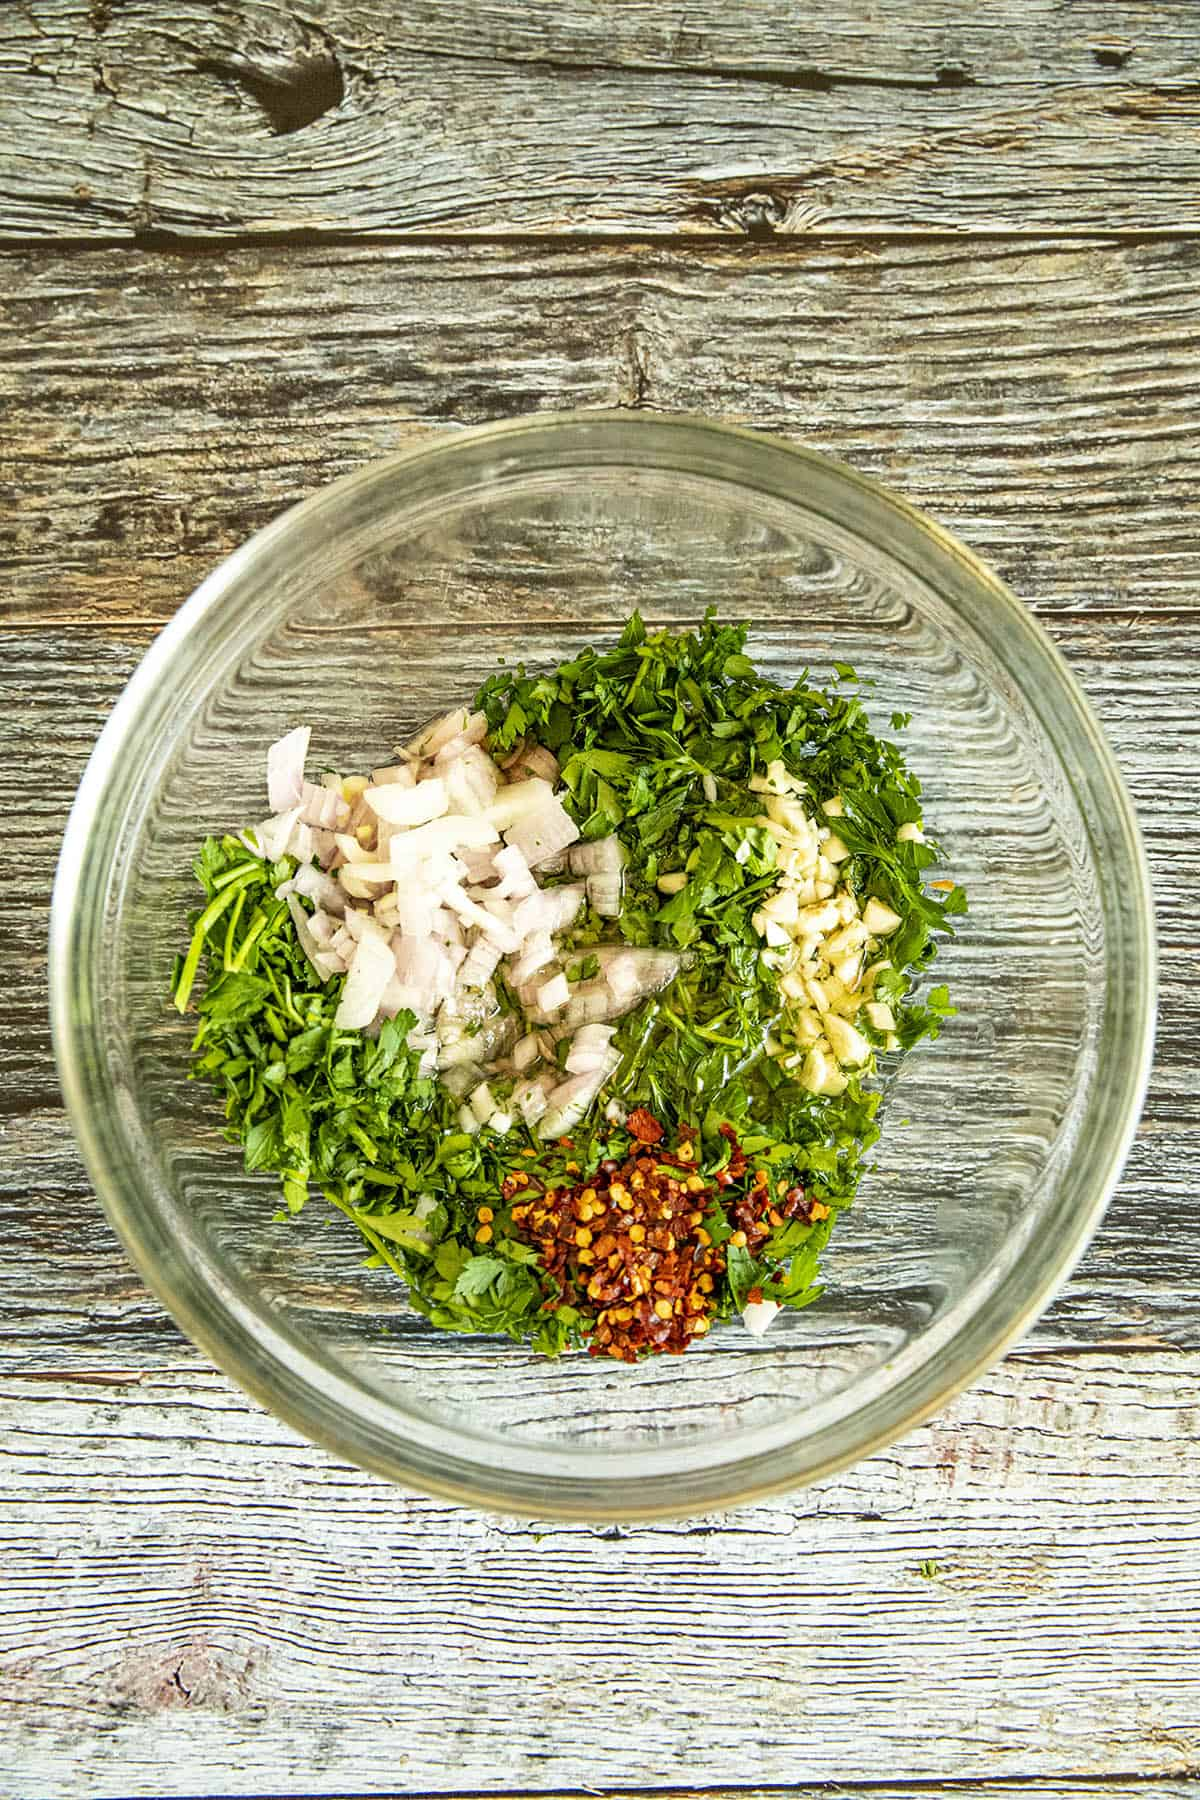 Chimichurri ingredients in a bowl